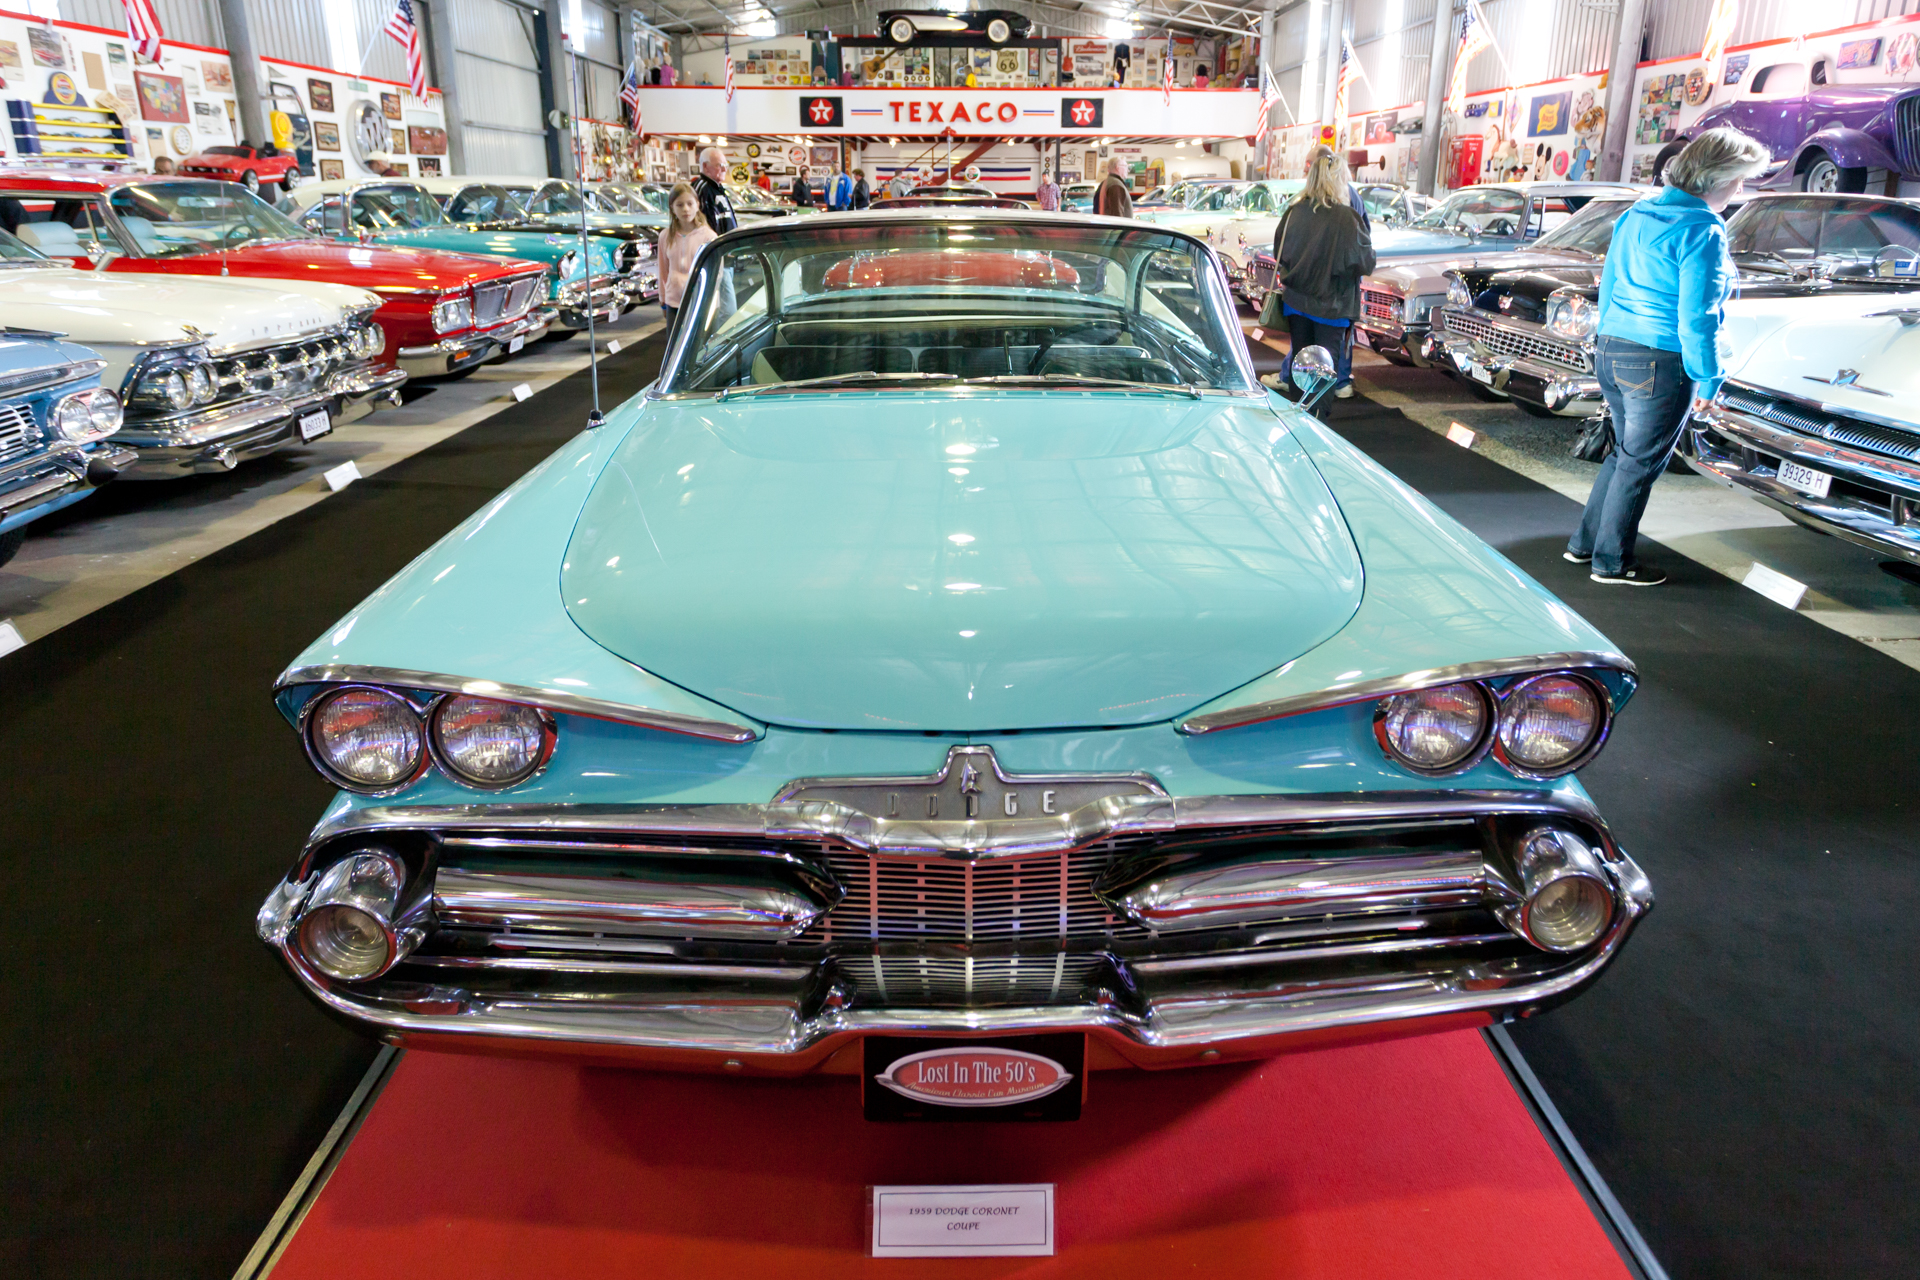 Lostinthe50s Auction Preview 1951 Cadillac Hot Rod 1959 Dodge Coronet Lancer Hard Top